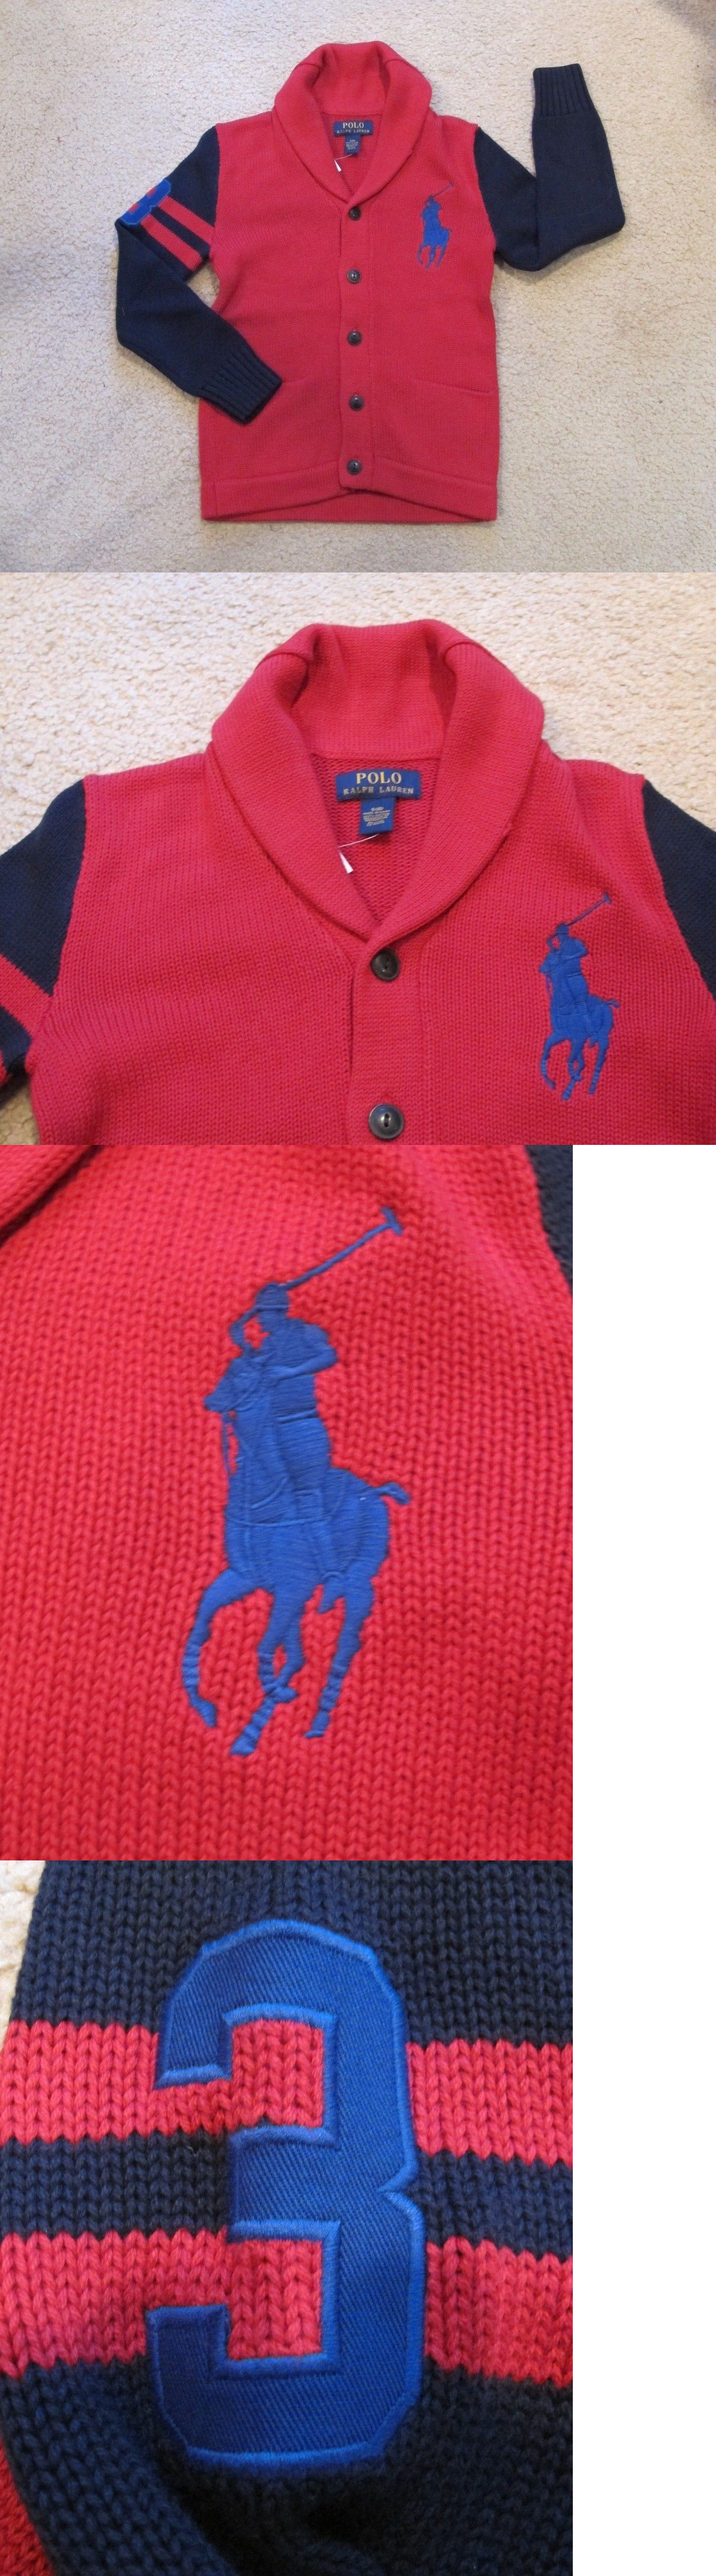 Sweaters 51946: Youth Boys Small (8) Polo Ralph Lauren Big Pony ...